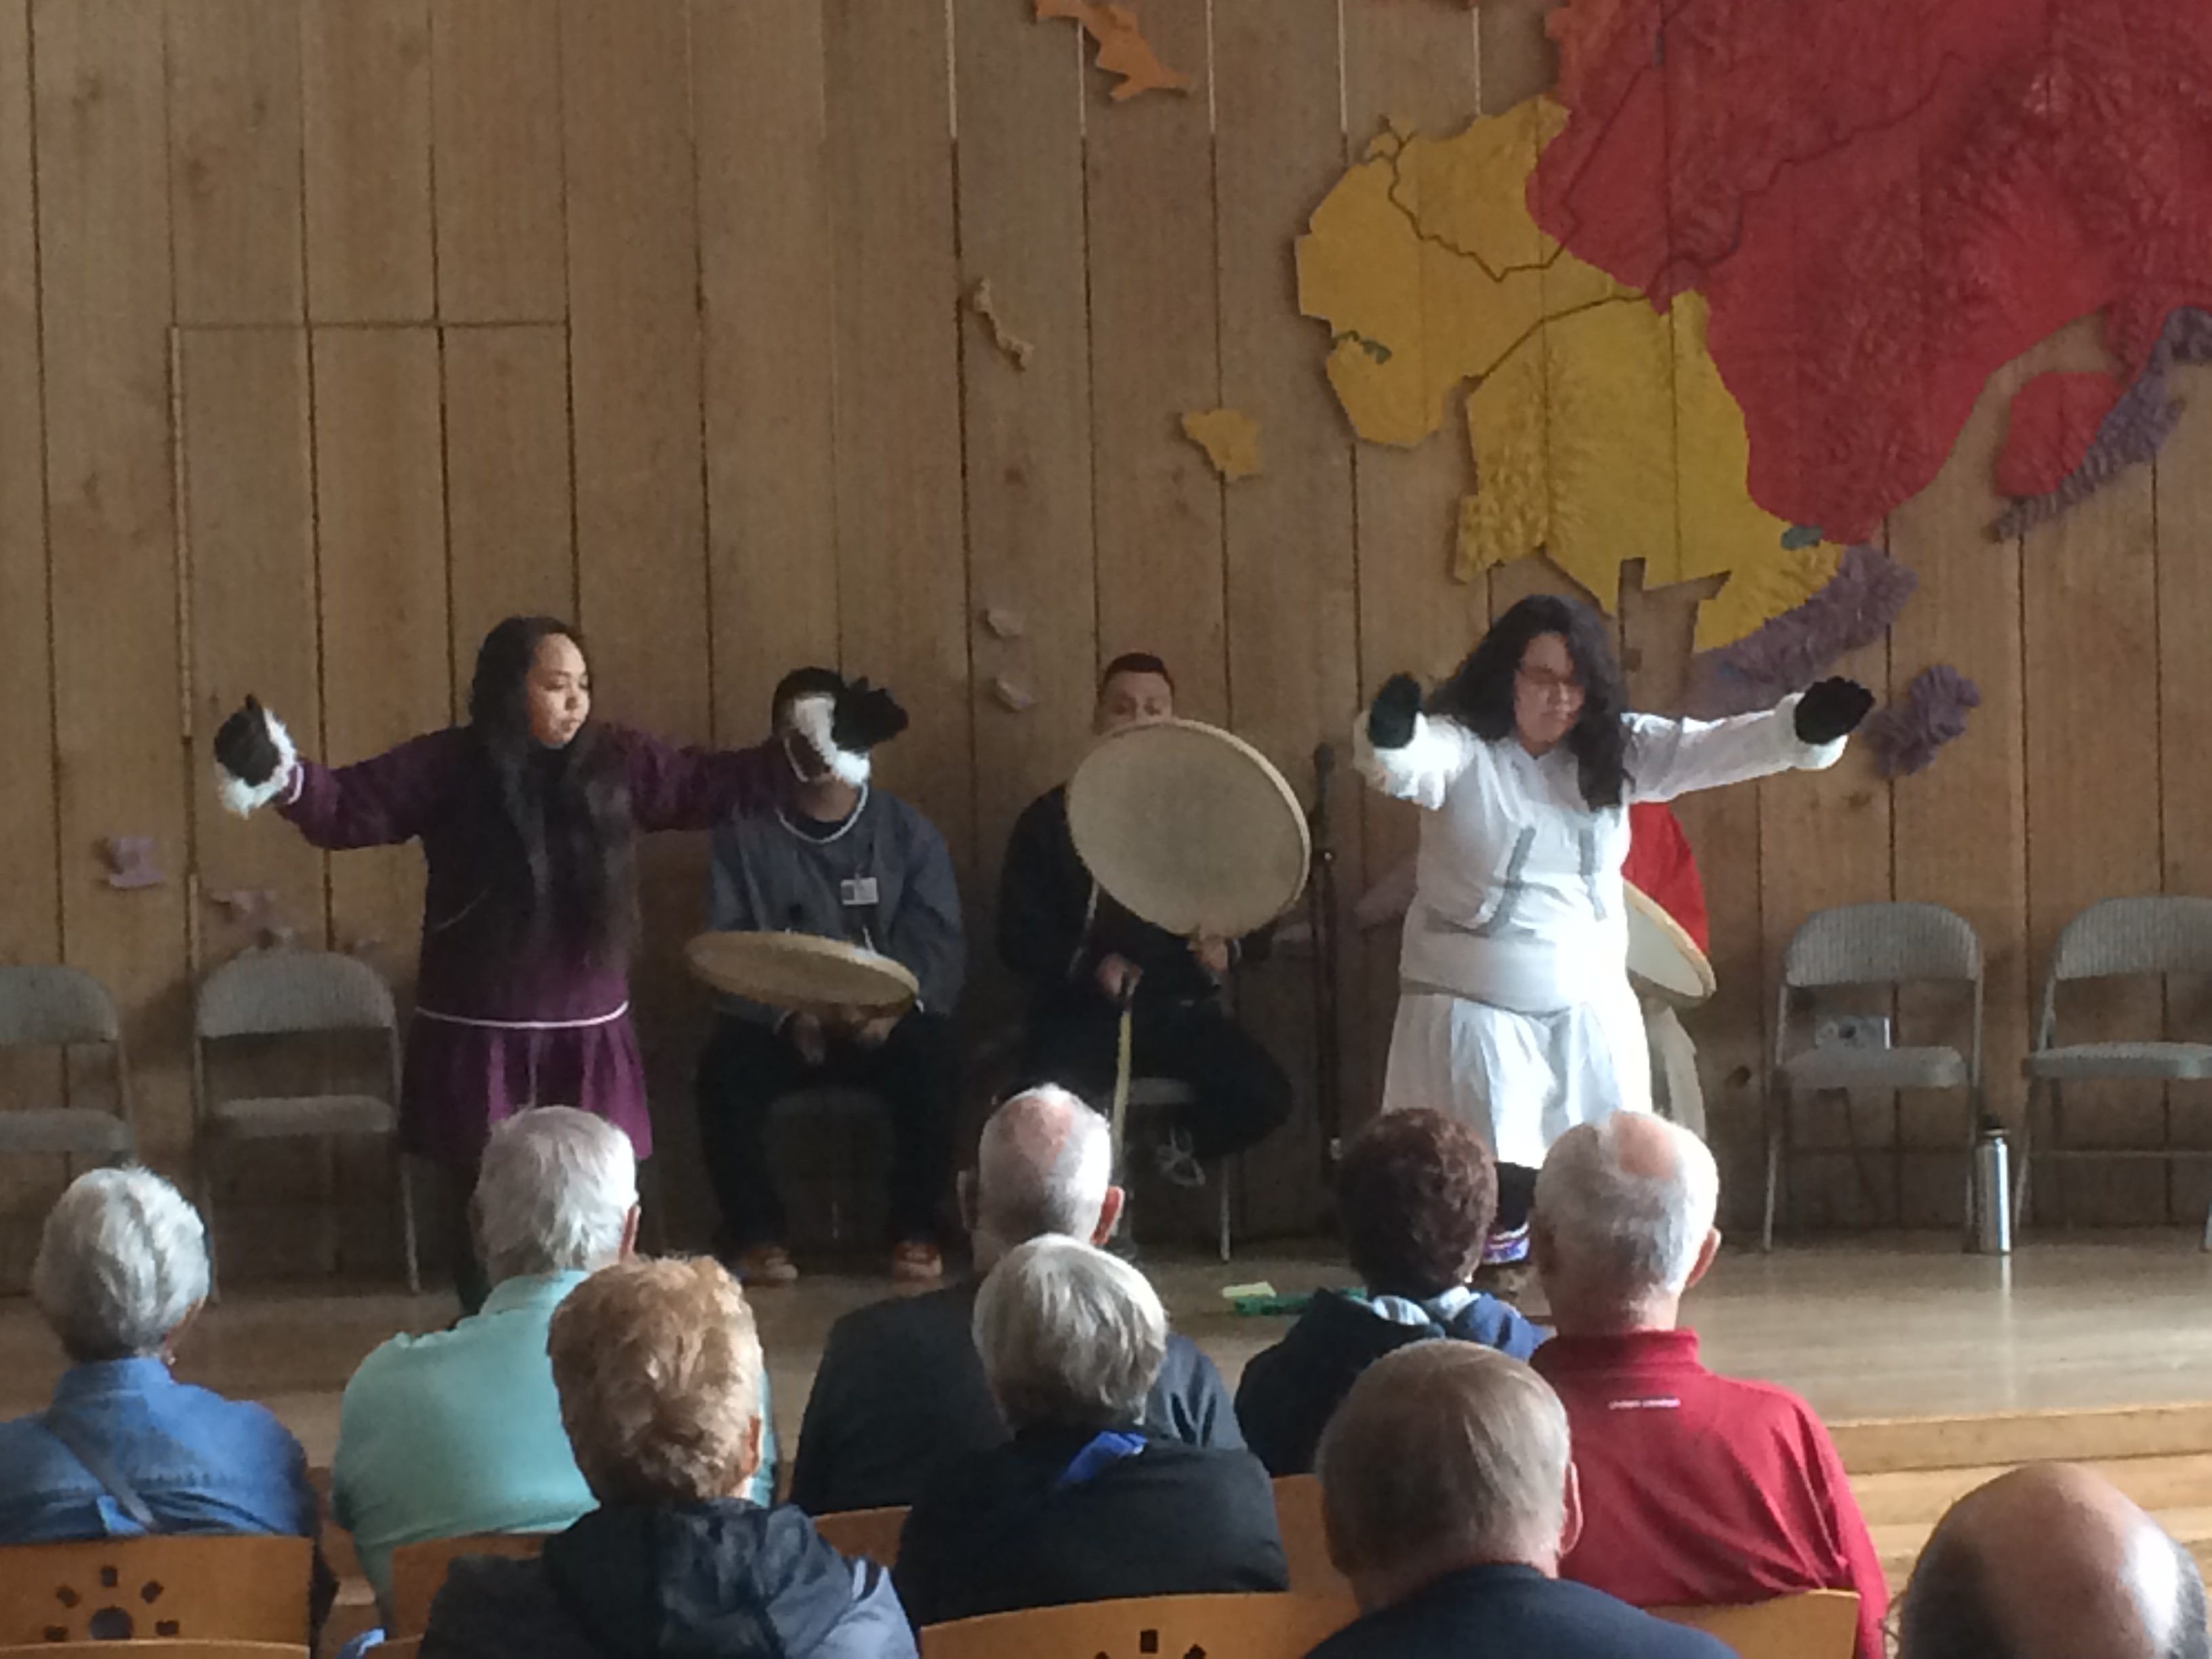 Dancers at the Alaska Native Heritage Center